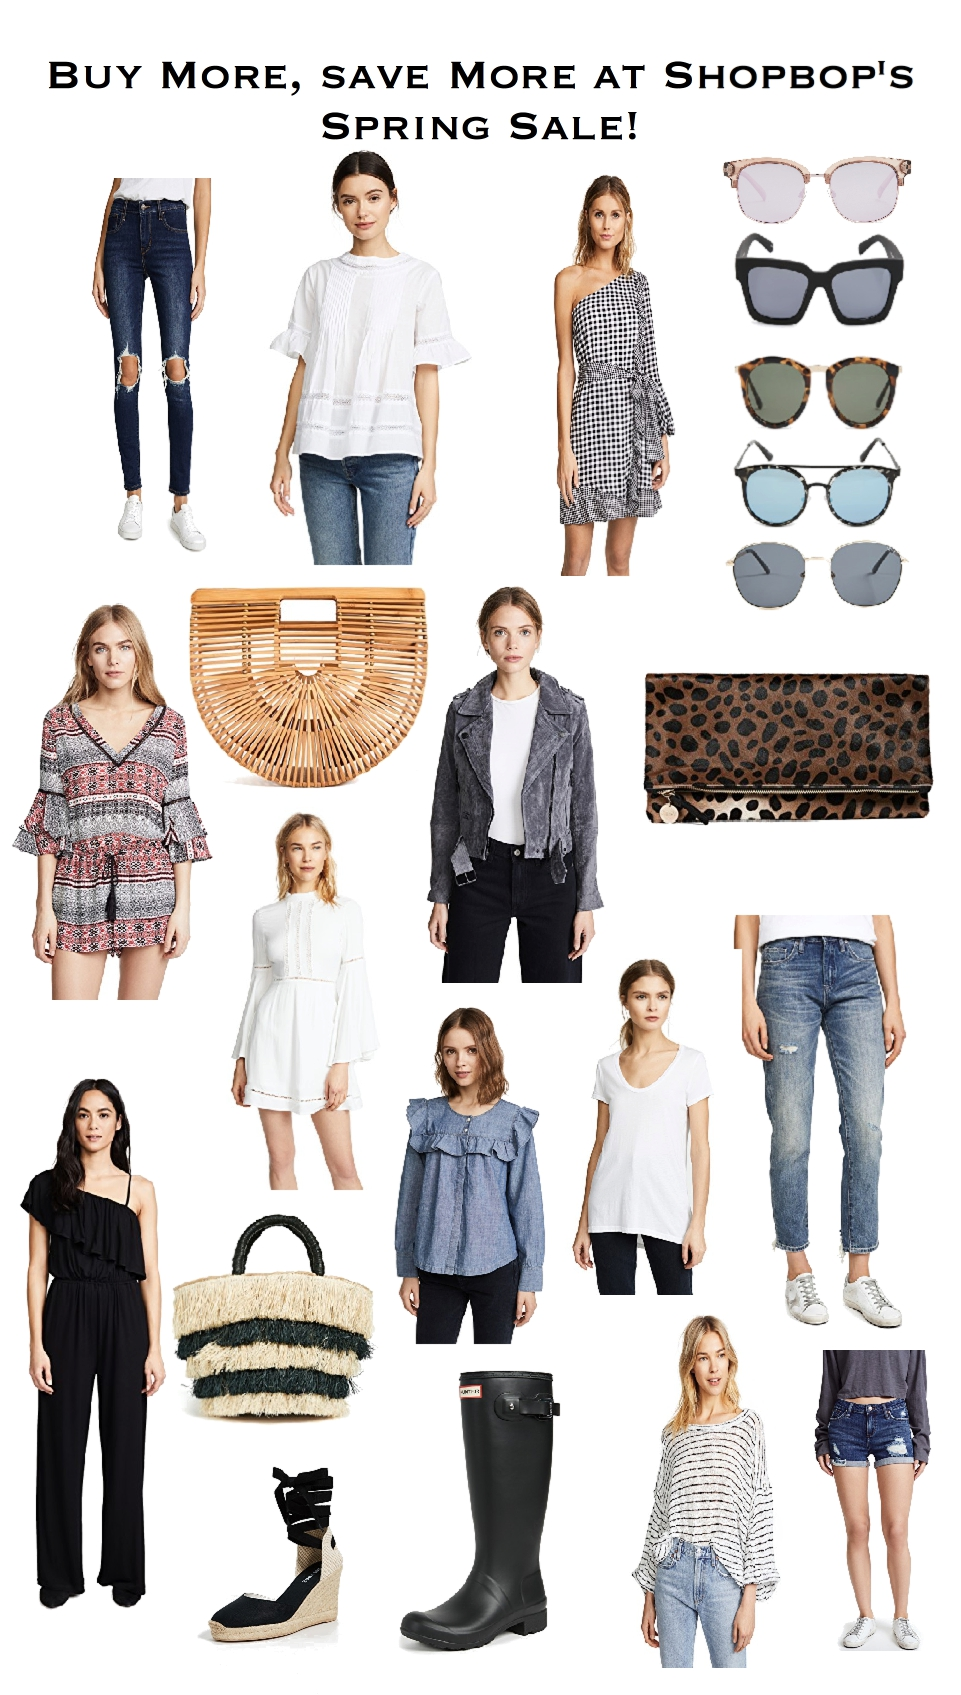 How to Shop Shopbop's Spring Sale, Shopbop's buy more save more spring sale 2018, what to buy, spring 2018 fashion trends, how to get the best deal on designer clothes